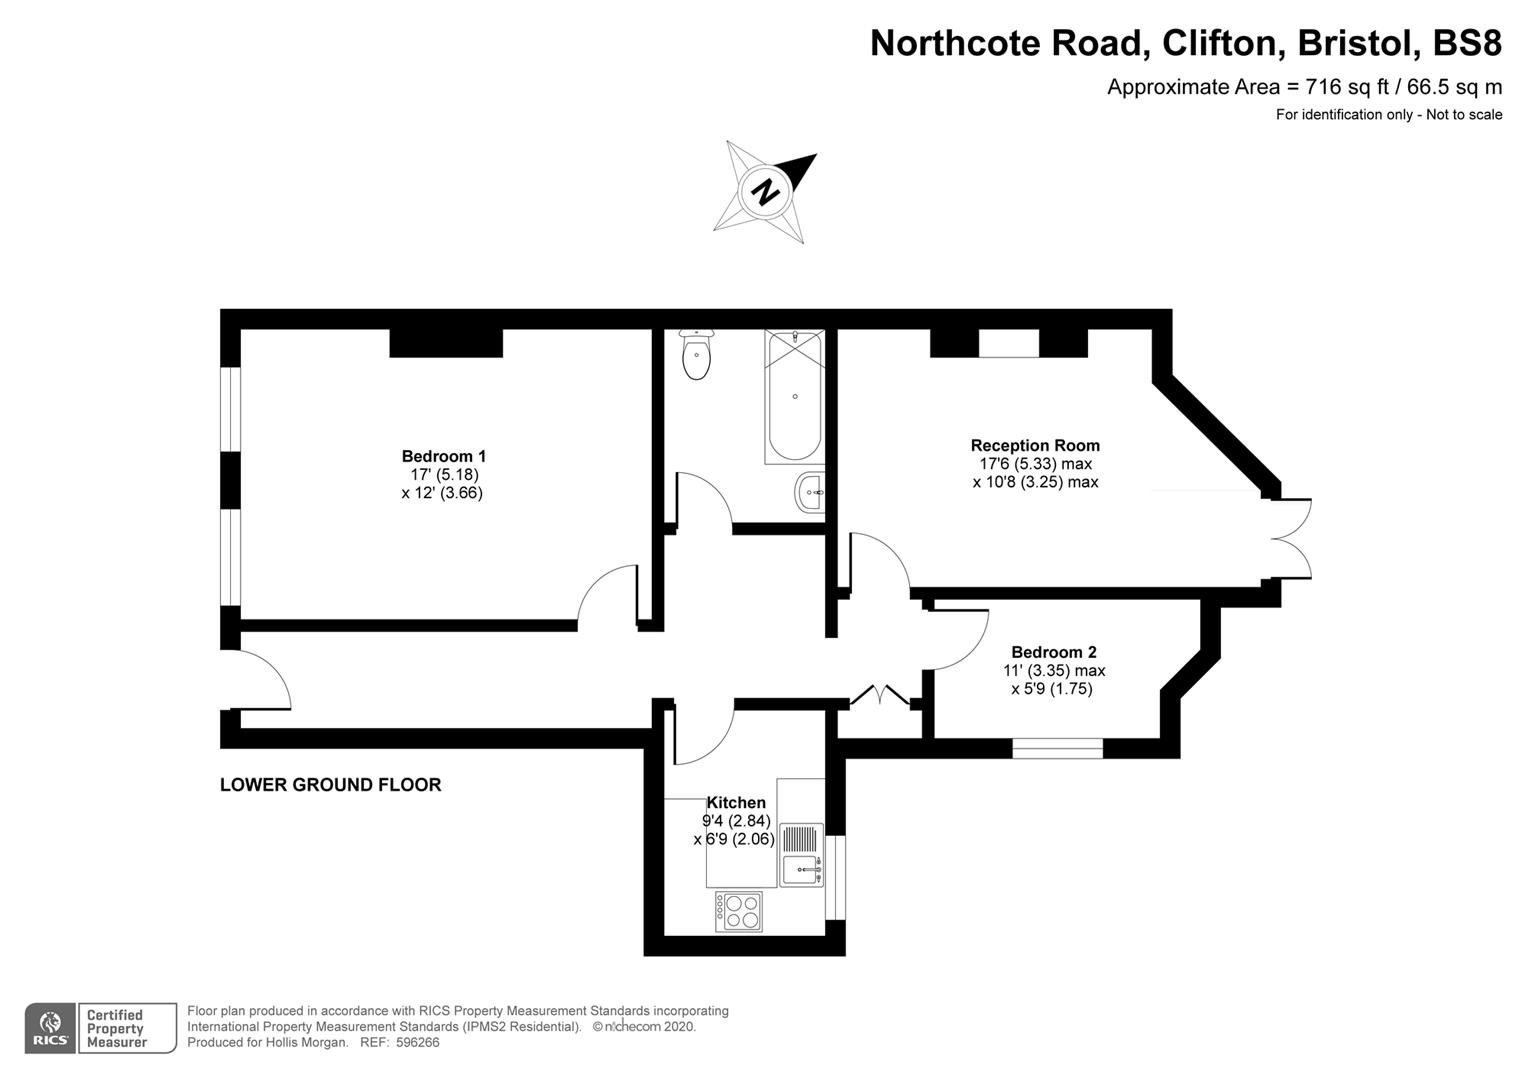 Floorplans For Northcote Road, Clifton